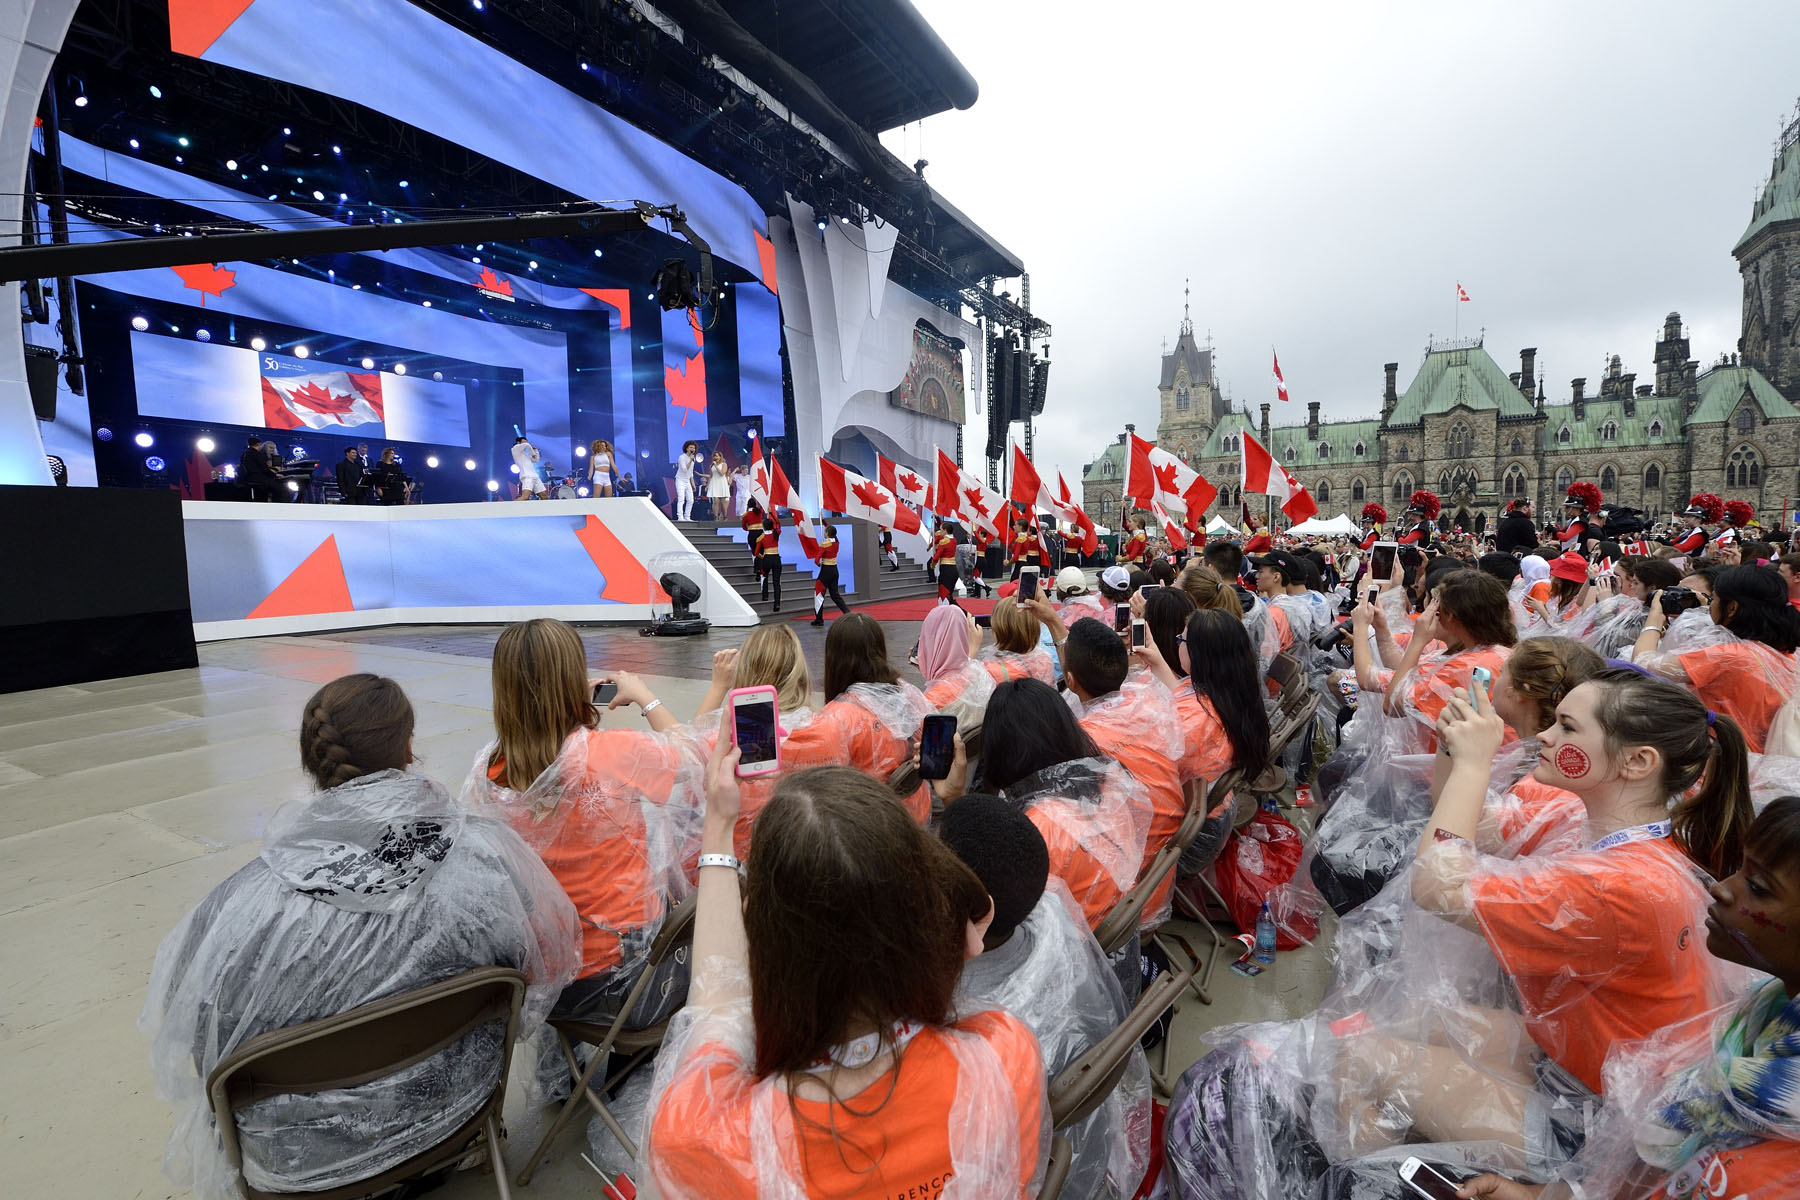 The opening number highlighted the 50th anniversary of the National Flag of Canada.